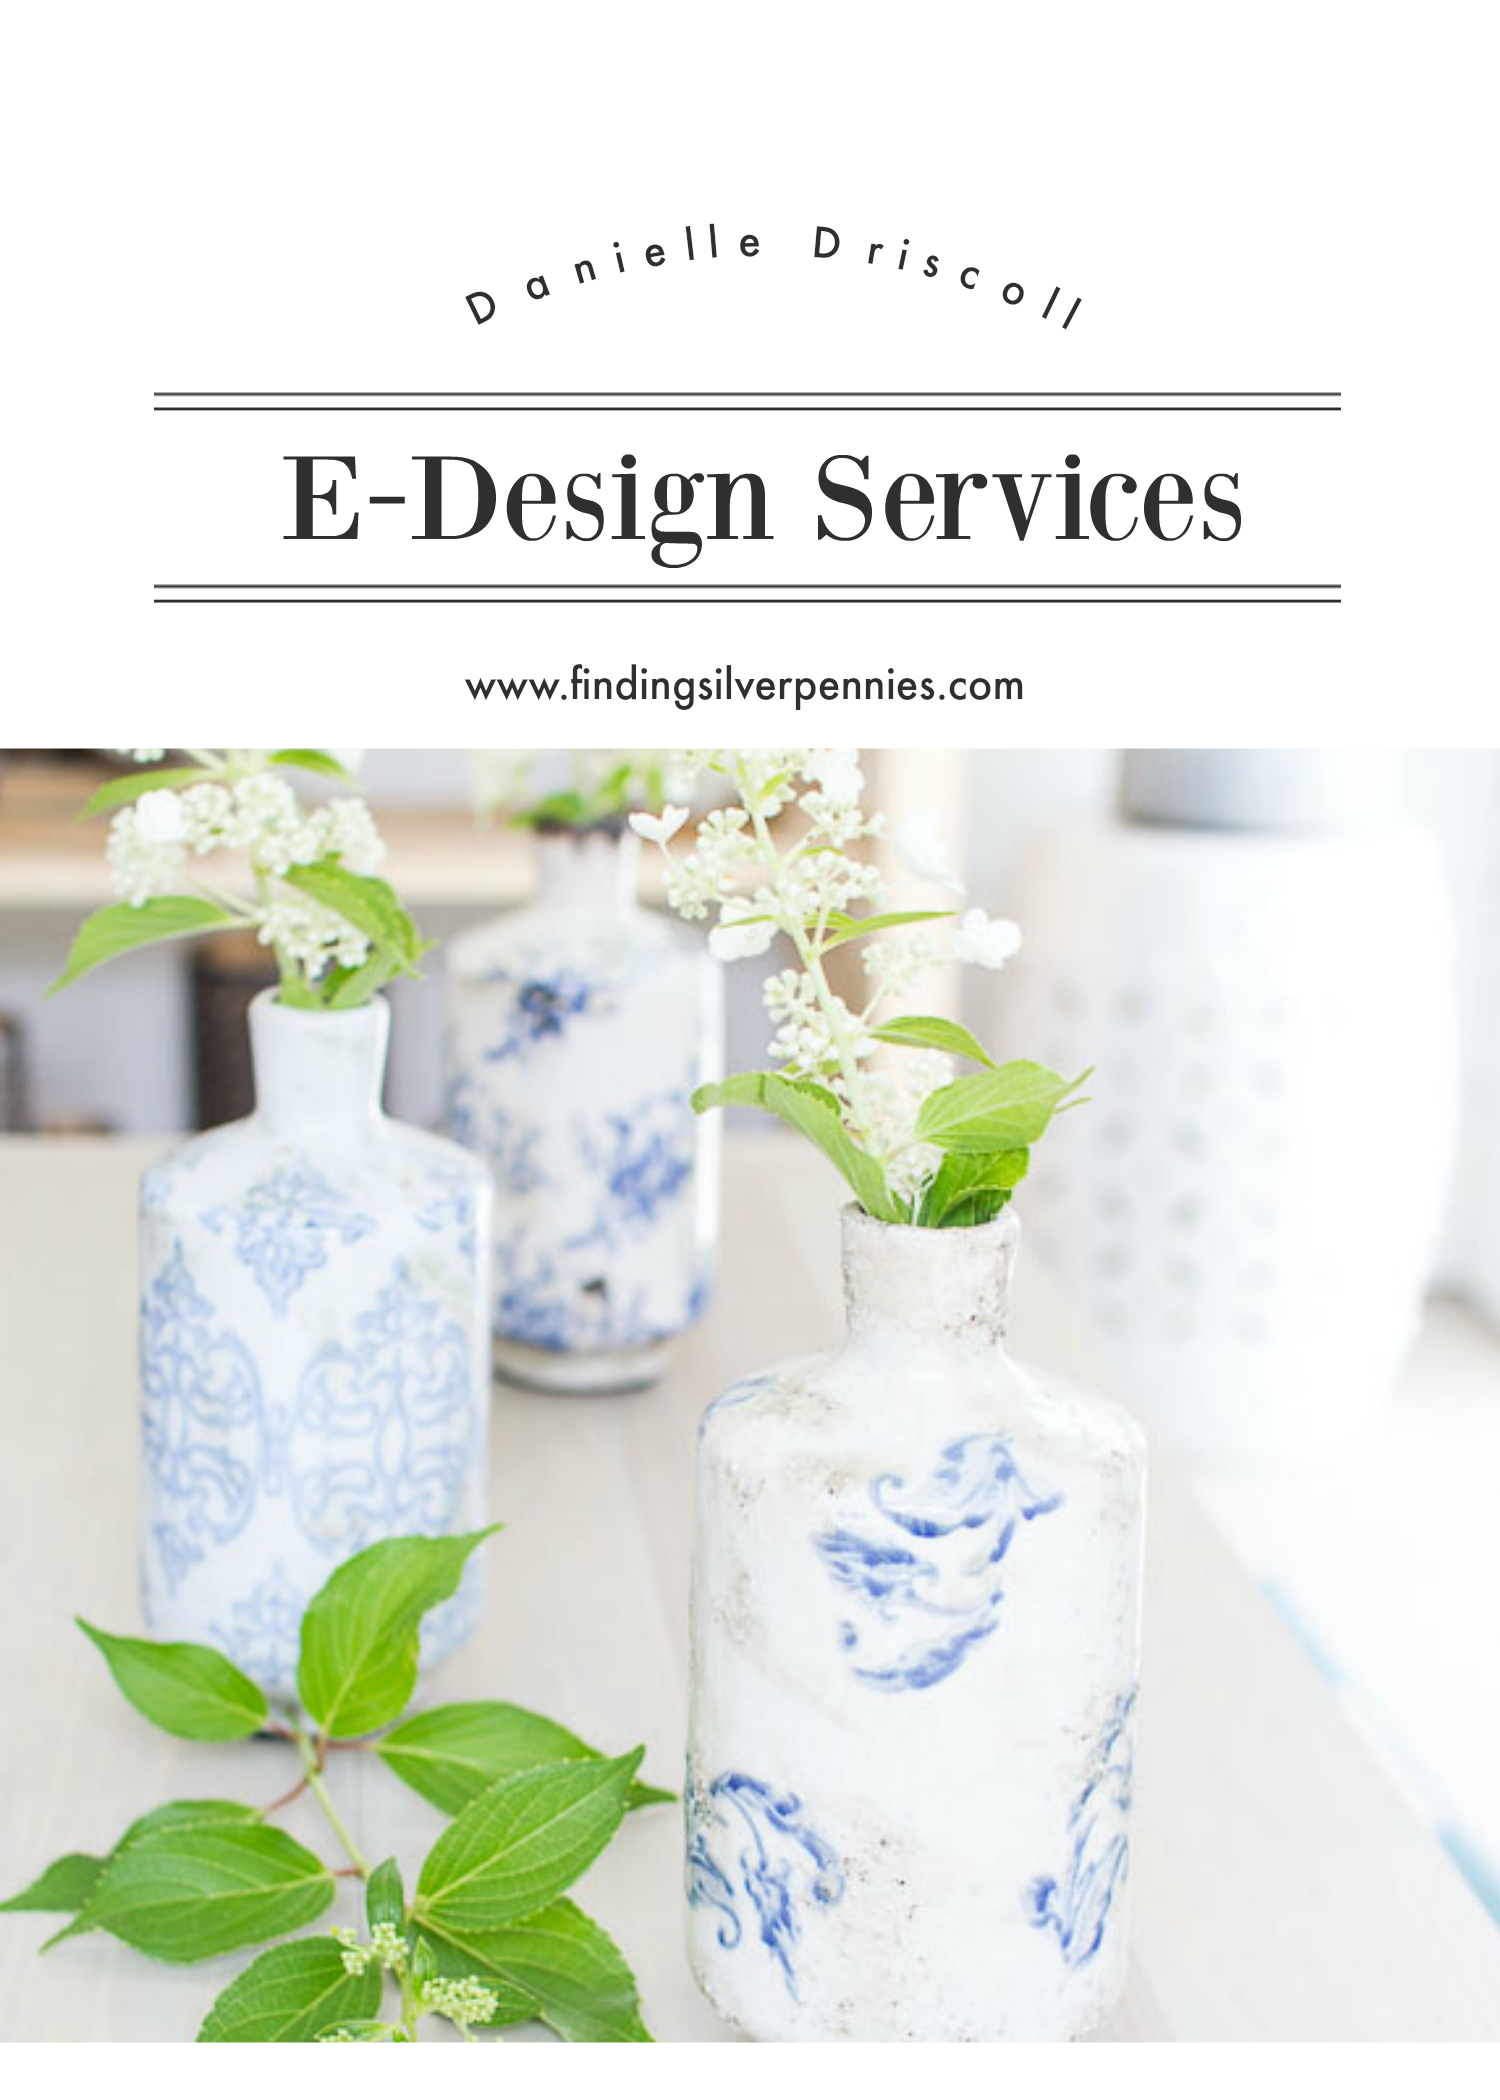 e Design Services by Danielle of Finding Silver Pennies